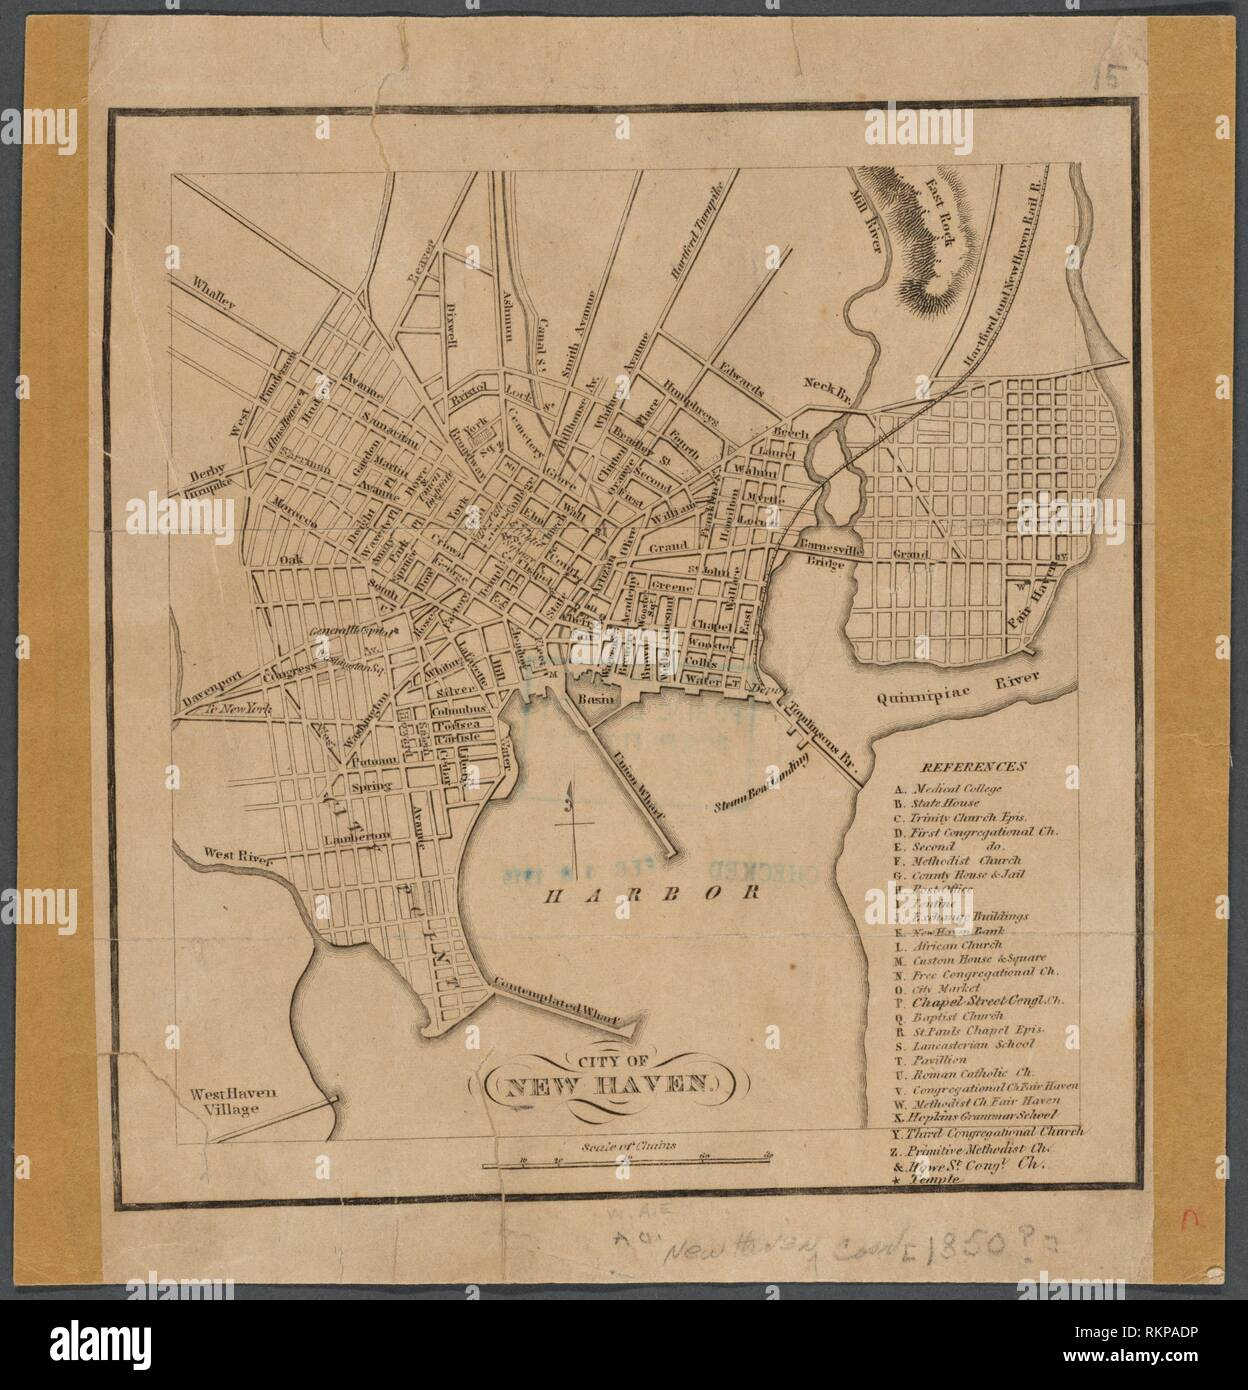 Map Of New York 1850.City Of New Haven Maps Of North America Countries United States